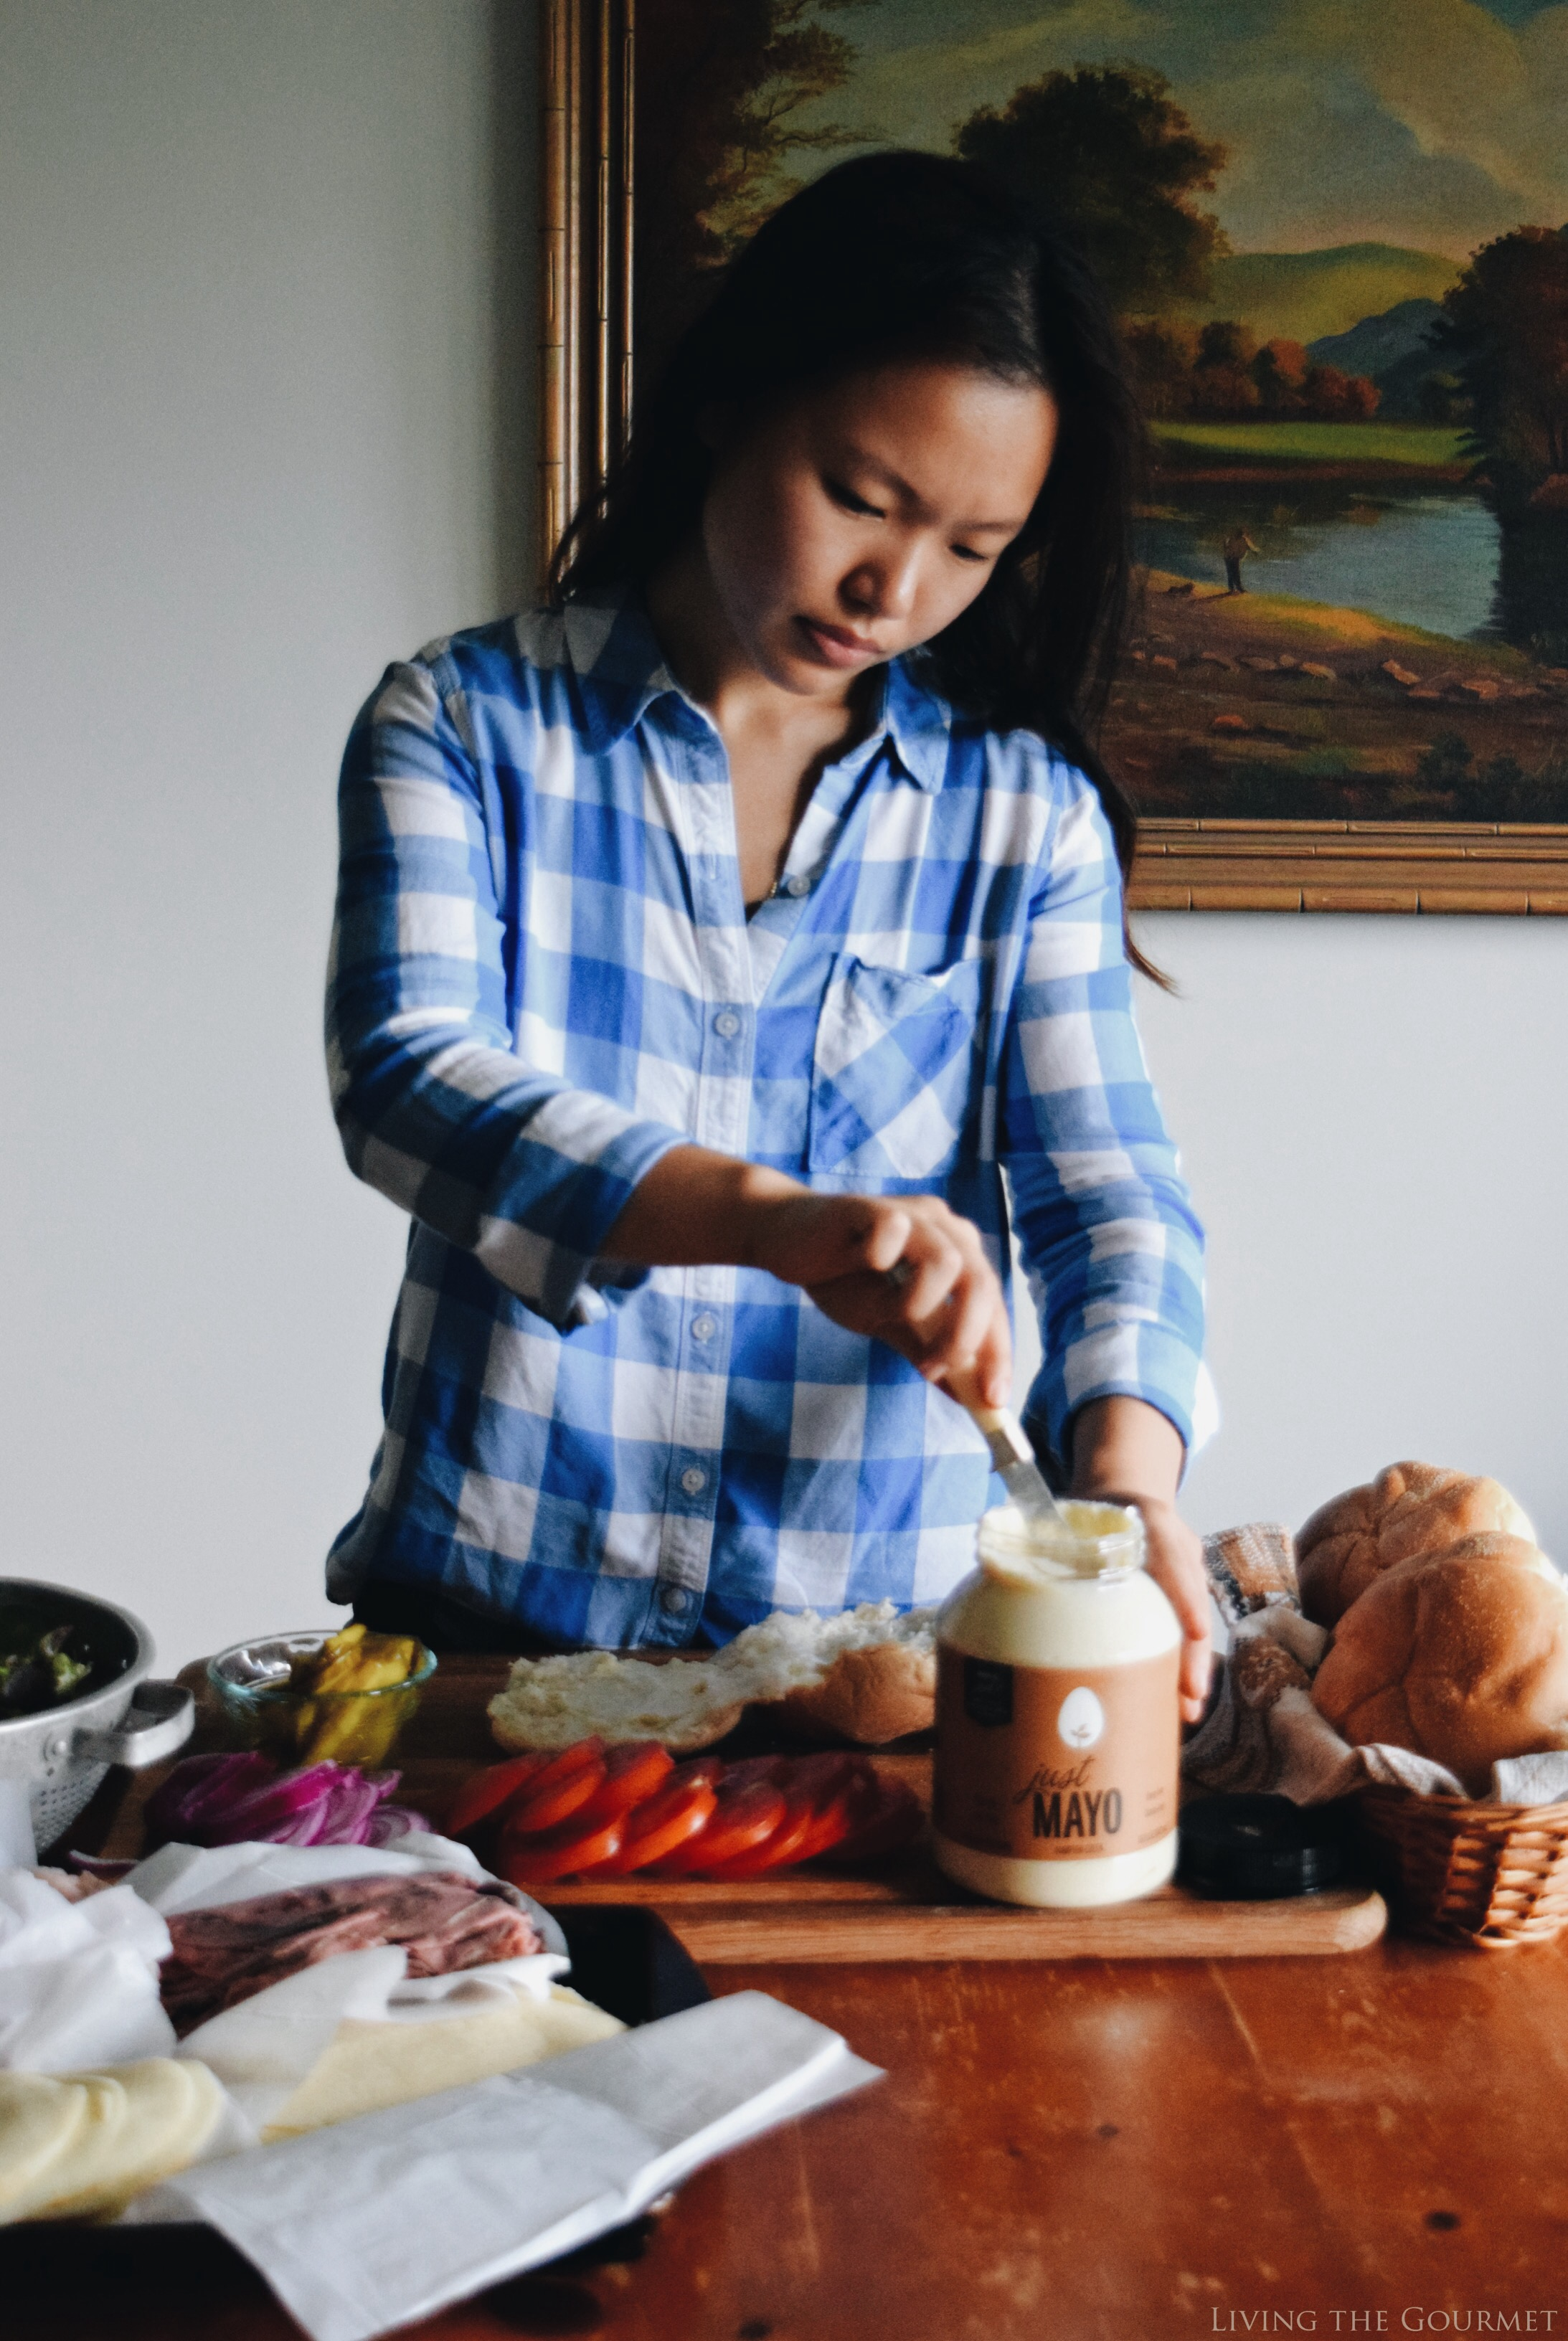 Living the Gourmet: Hamptoncreek Just Mayo